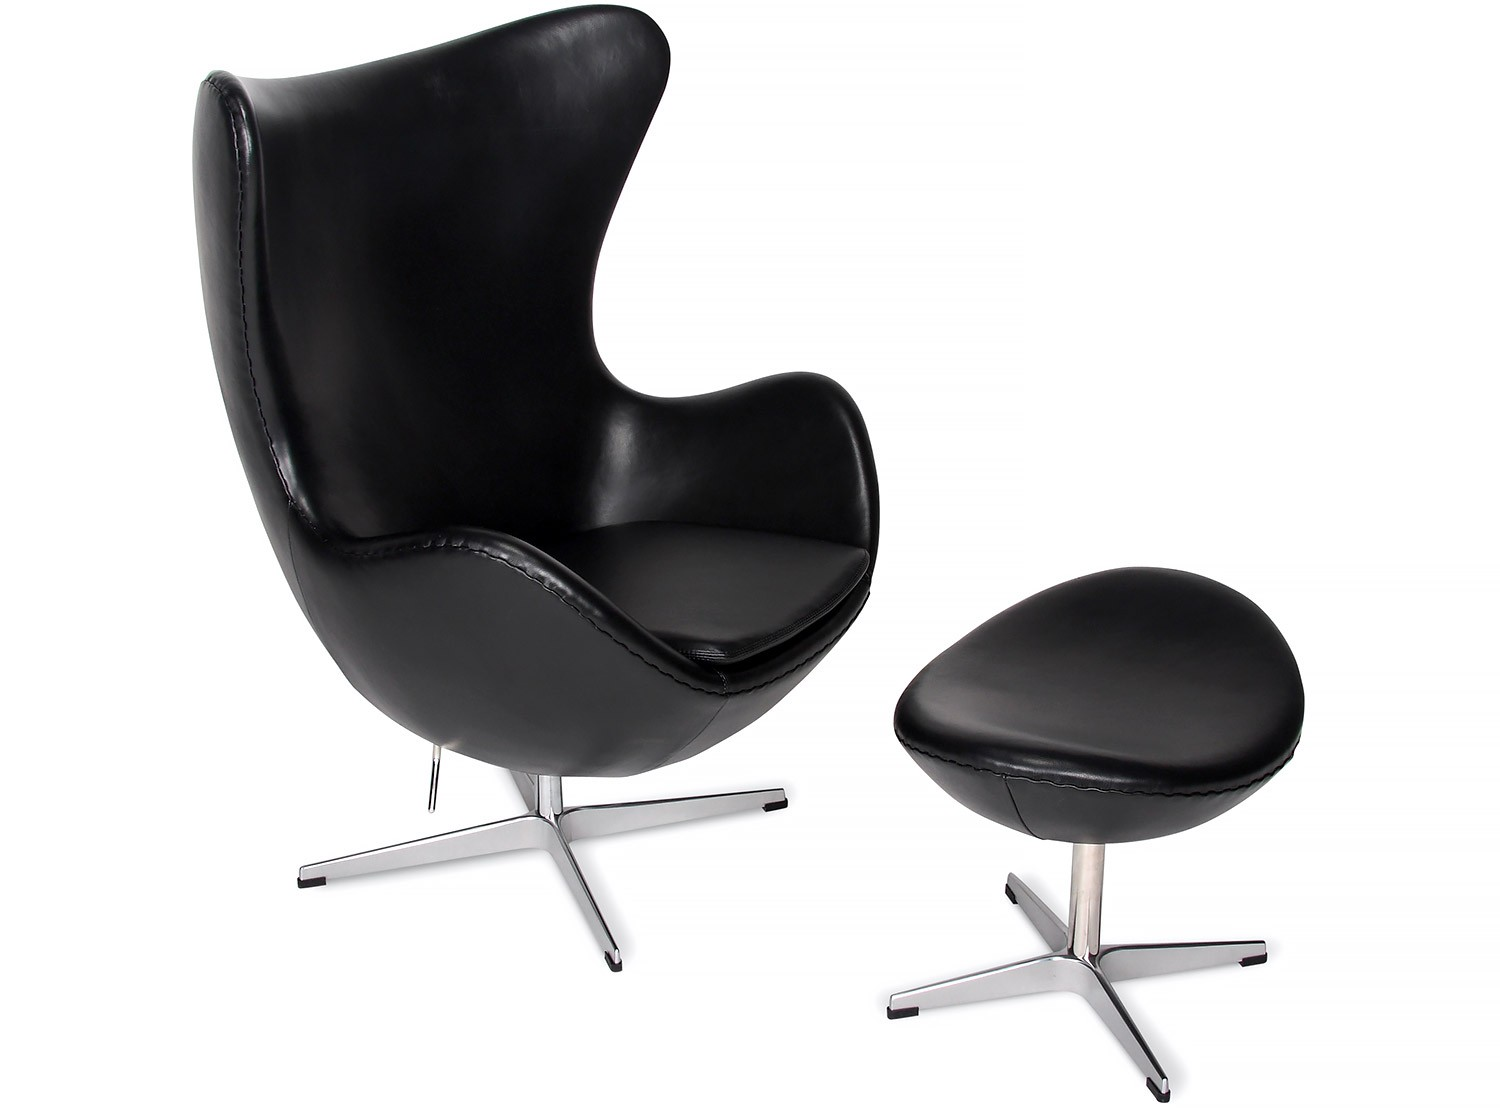 Arne Jacobsen Egg Chair Replica Egg Chair By Arne Jacobsen Leather Platinum Replica